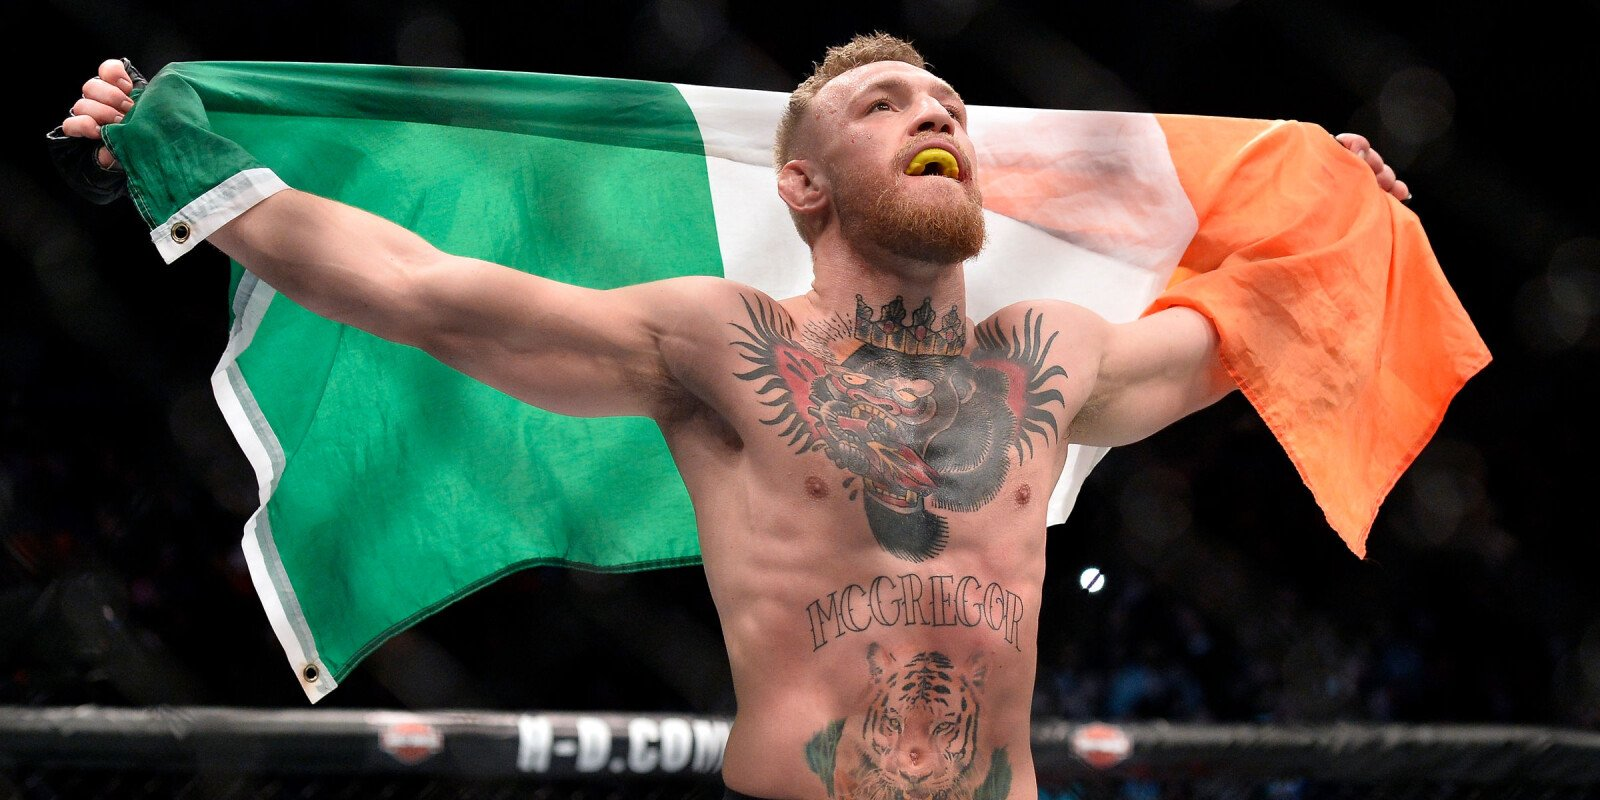 Conor McGregor of Ireland celebrates after his knockout victory over Eddie Alvarez in their UFC lightweight championship bout during the UFC 205 event at Madison Square Garden on November 12, 2016 in New York City.